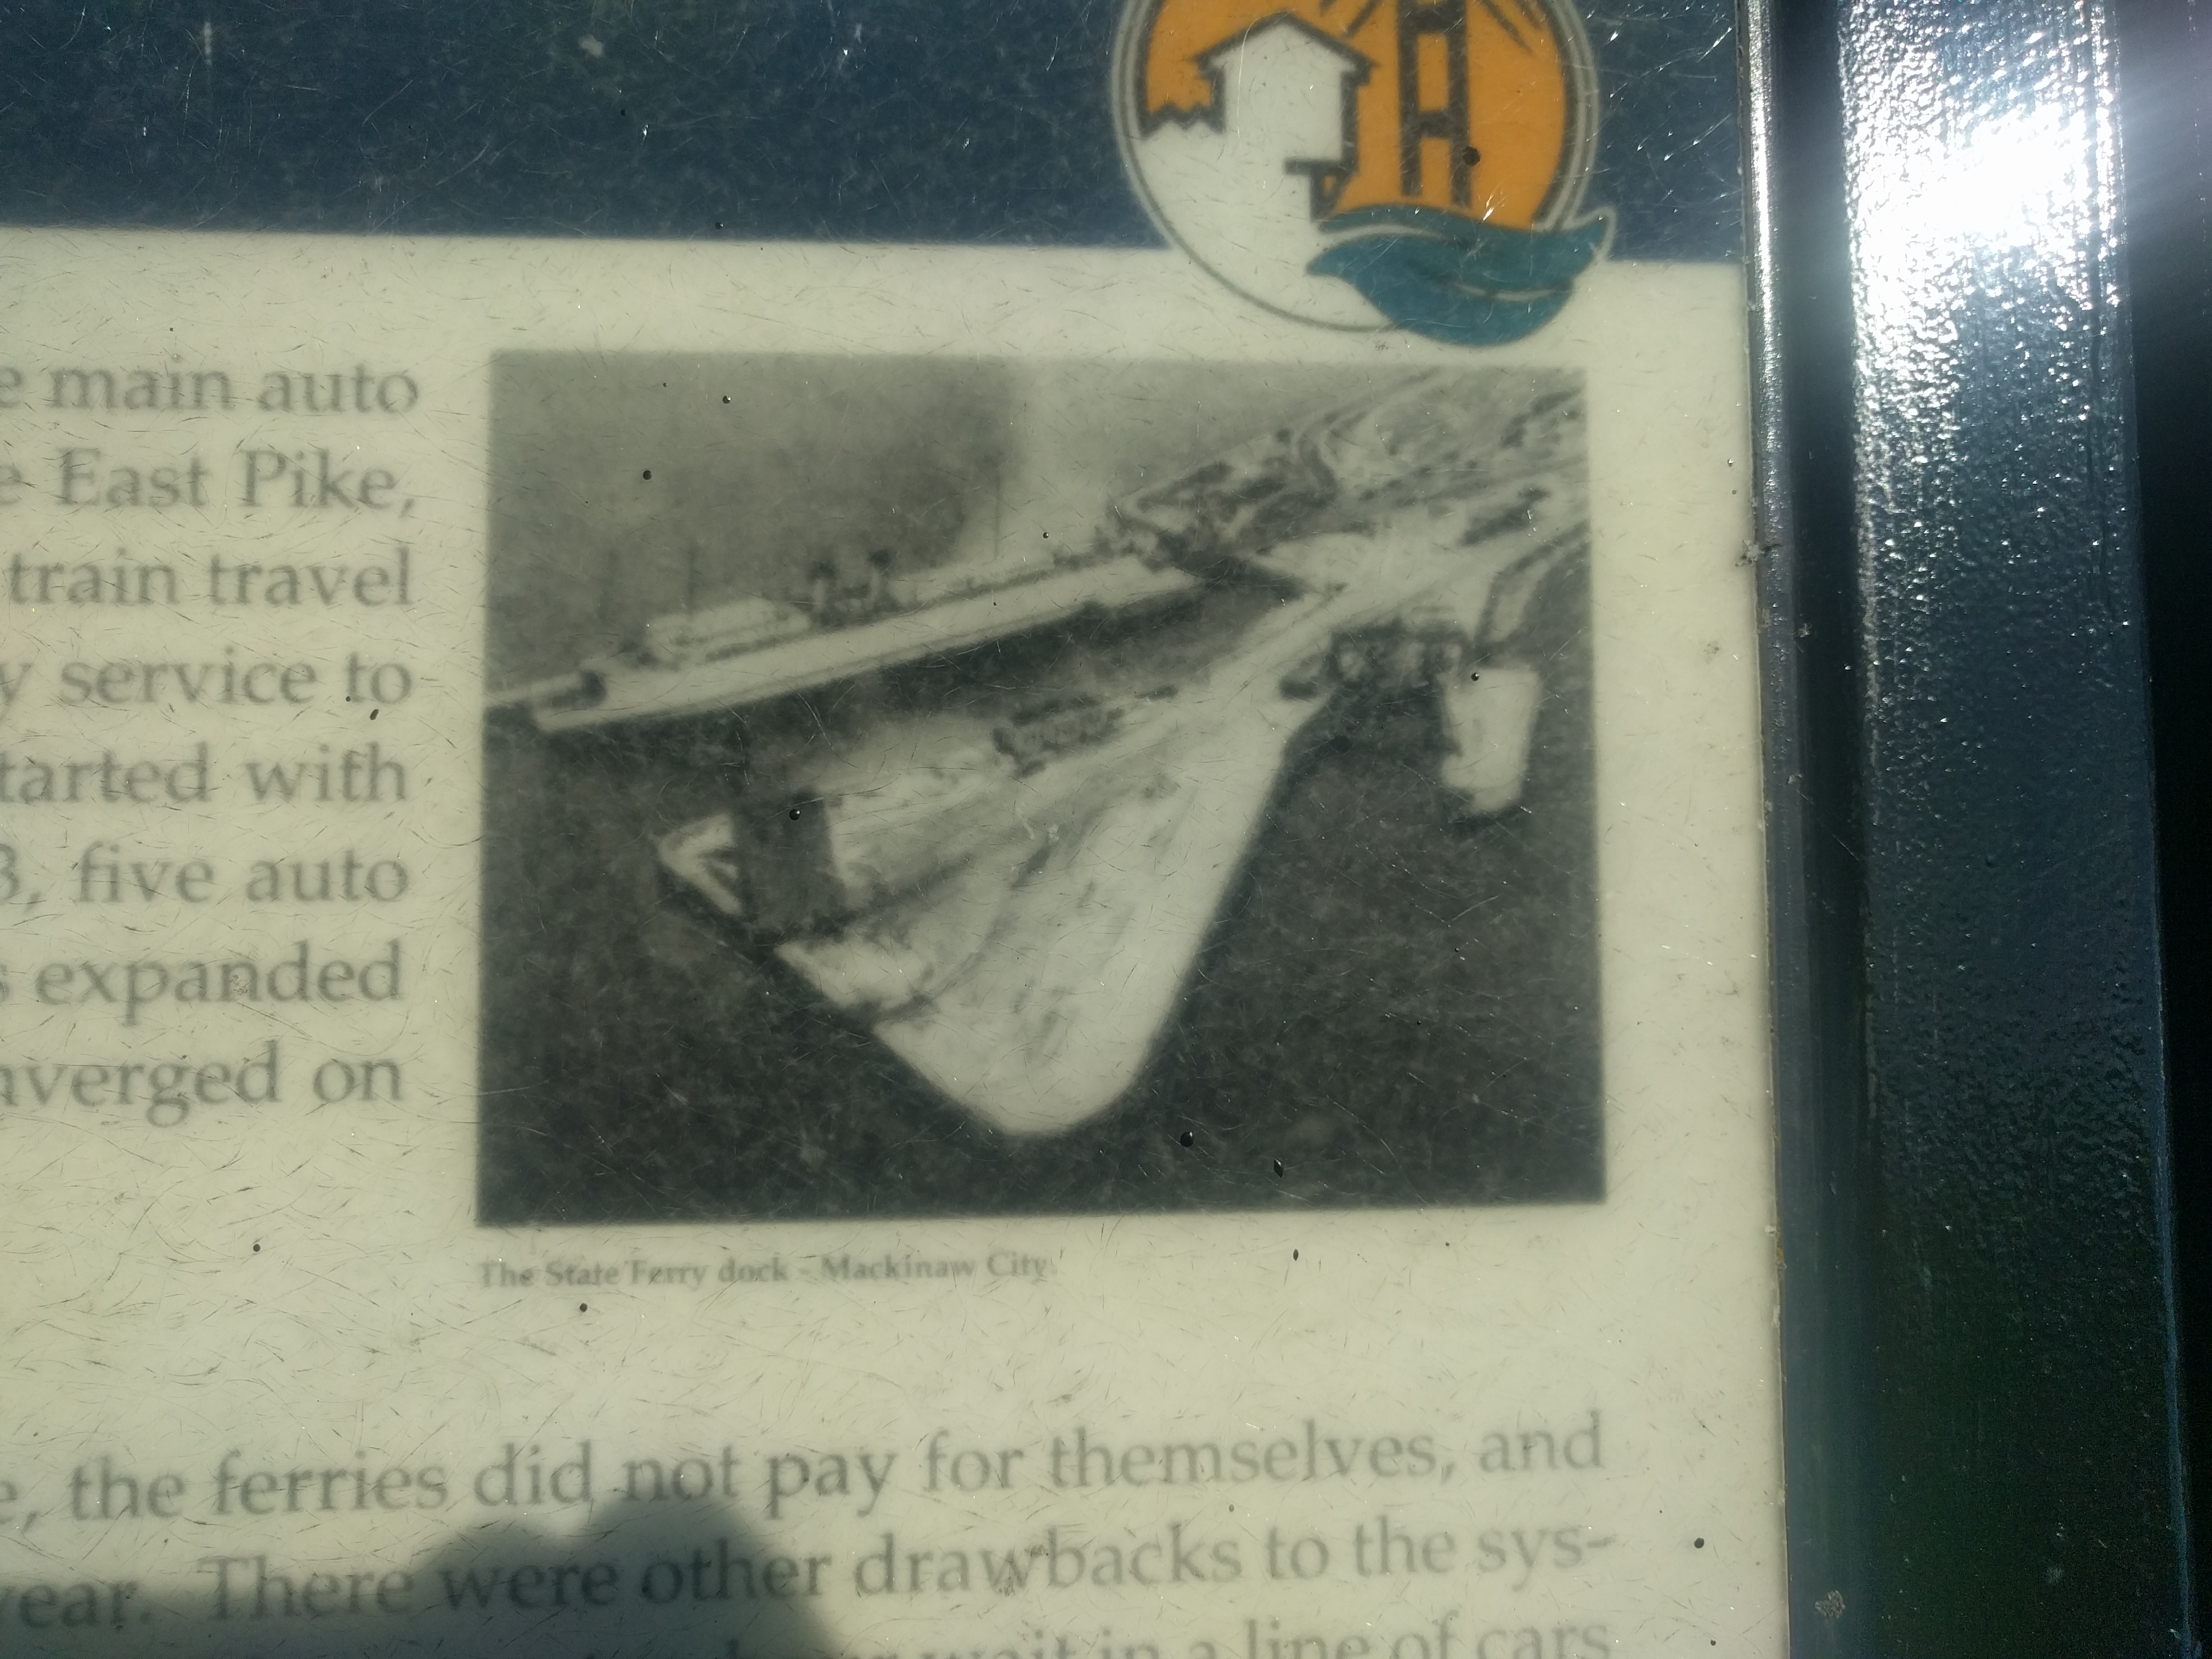 Auto Ferries Marker - upper right image